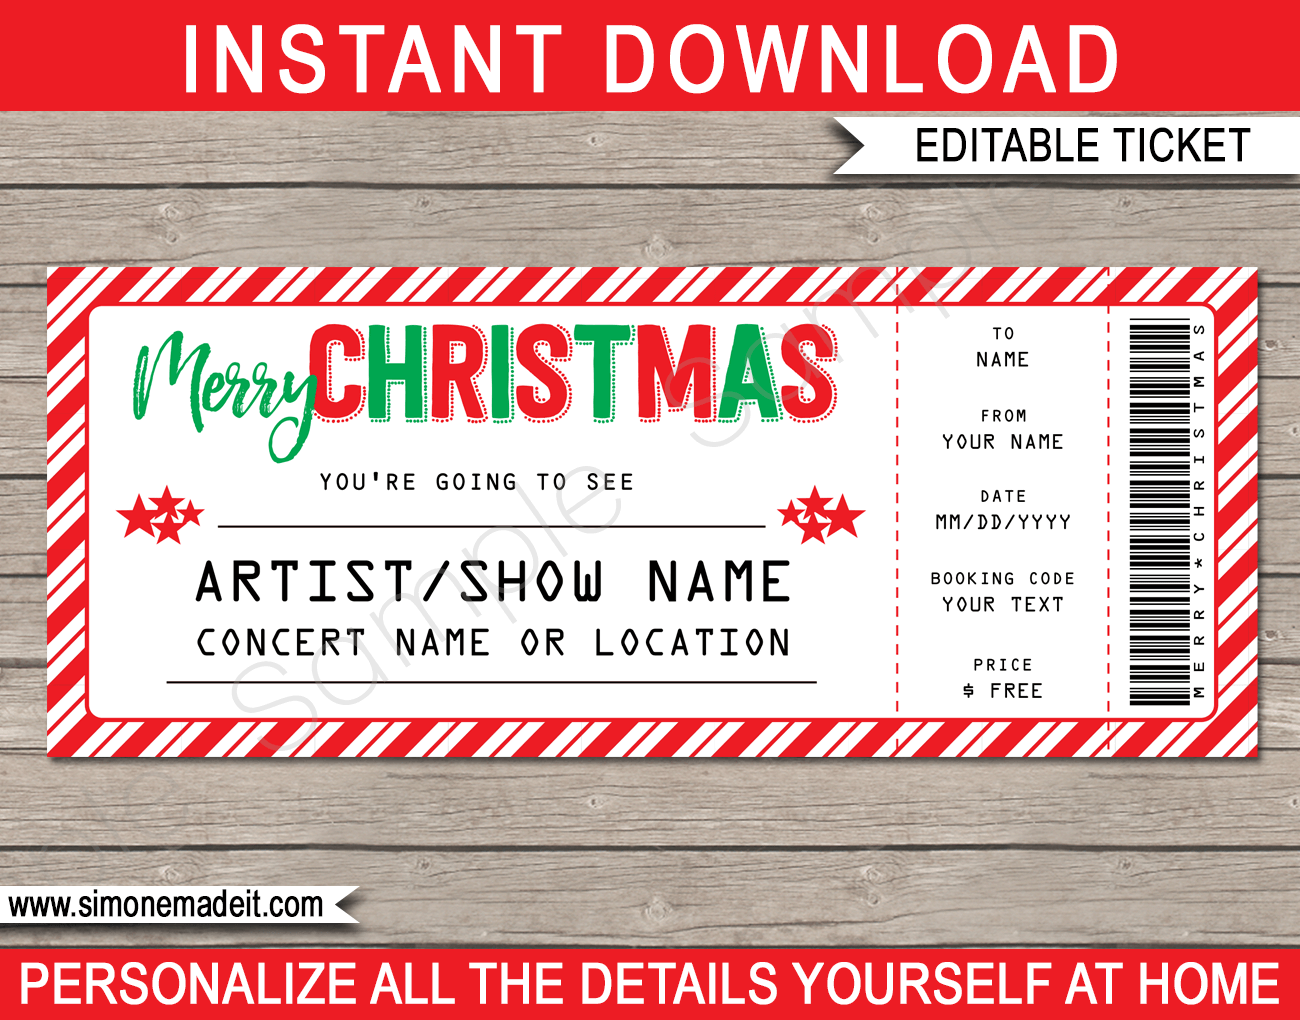 Concert Ticket Template Free Download Entrancing Christmas Gift Concert Ticket Template  Red Green & White .